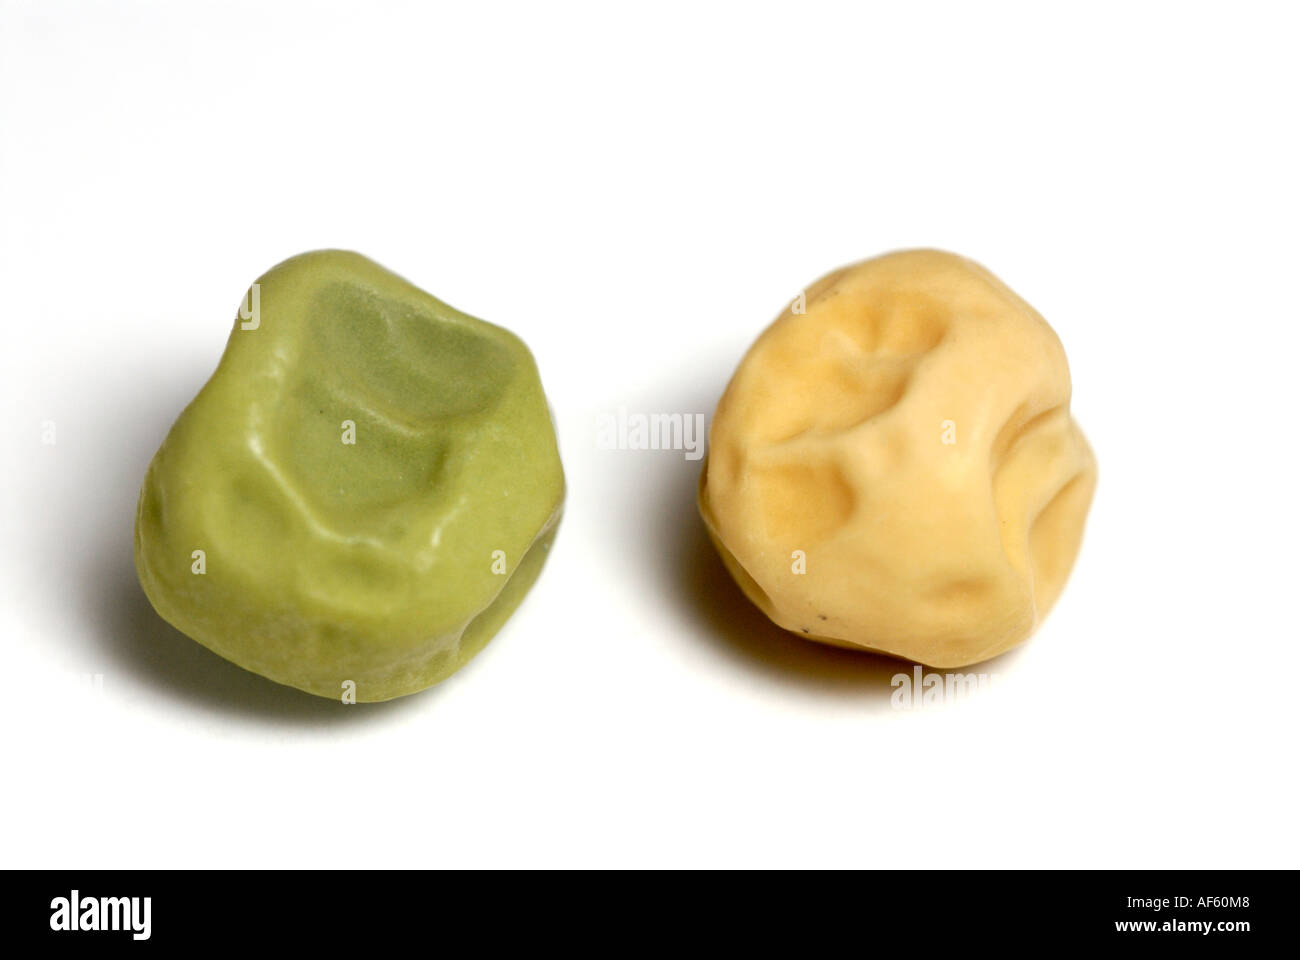 Green and yellow wrinkled pea seeds, traits Gregor Mendel studied in his genetics heredity experiments. - Stock Image